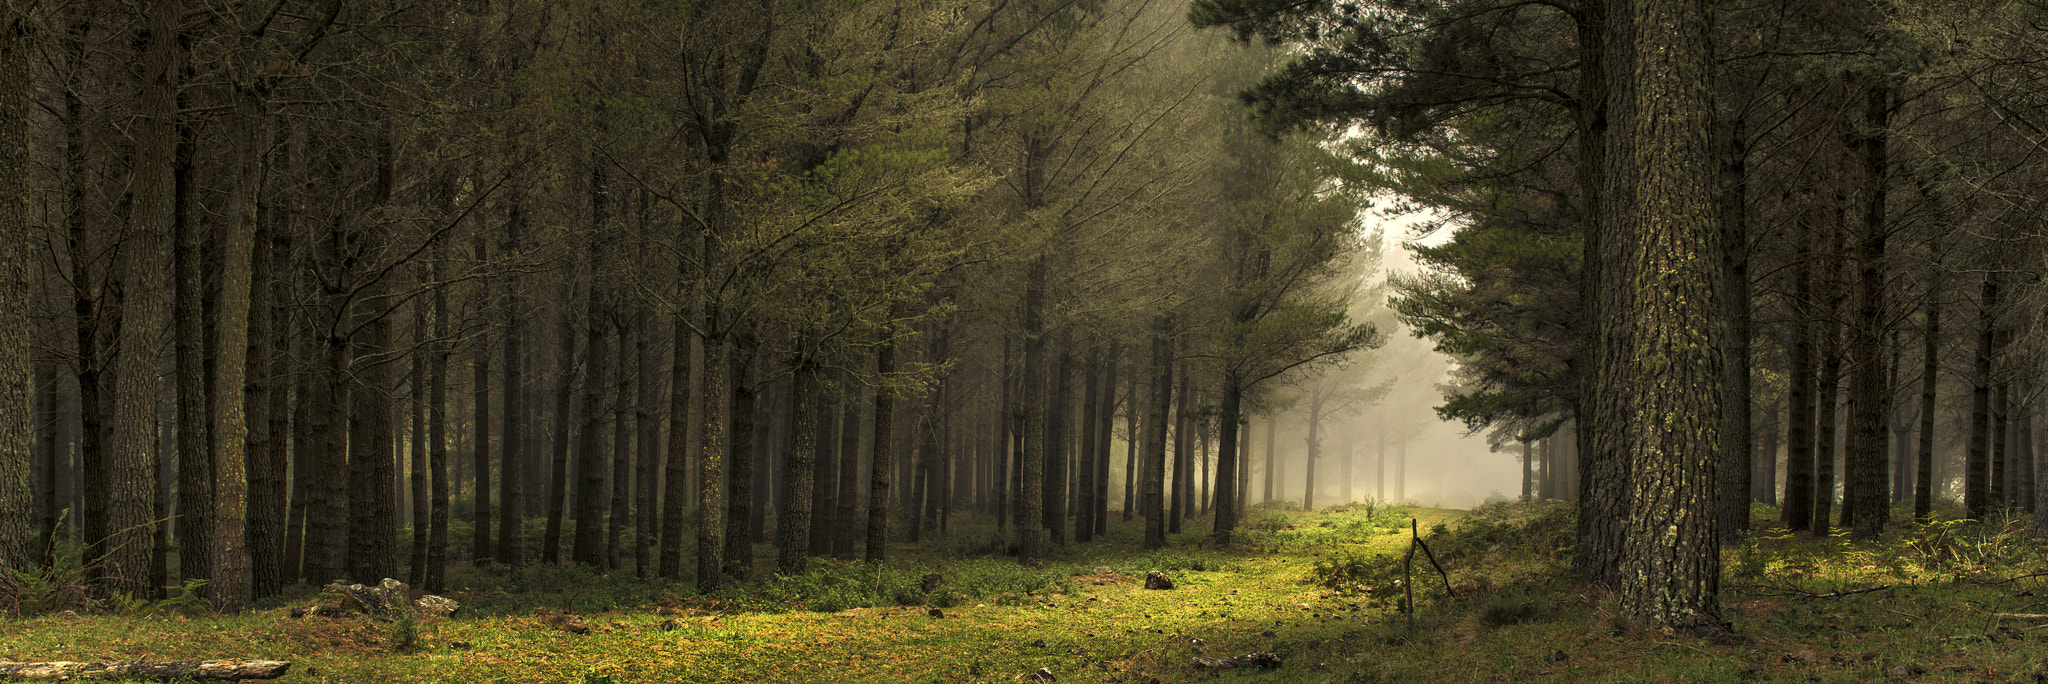 Photograph Walking With The Trees by Timothy Poulton on 500px